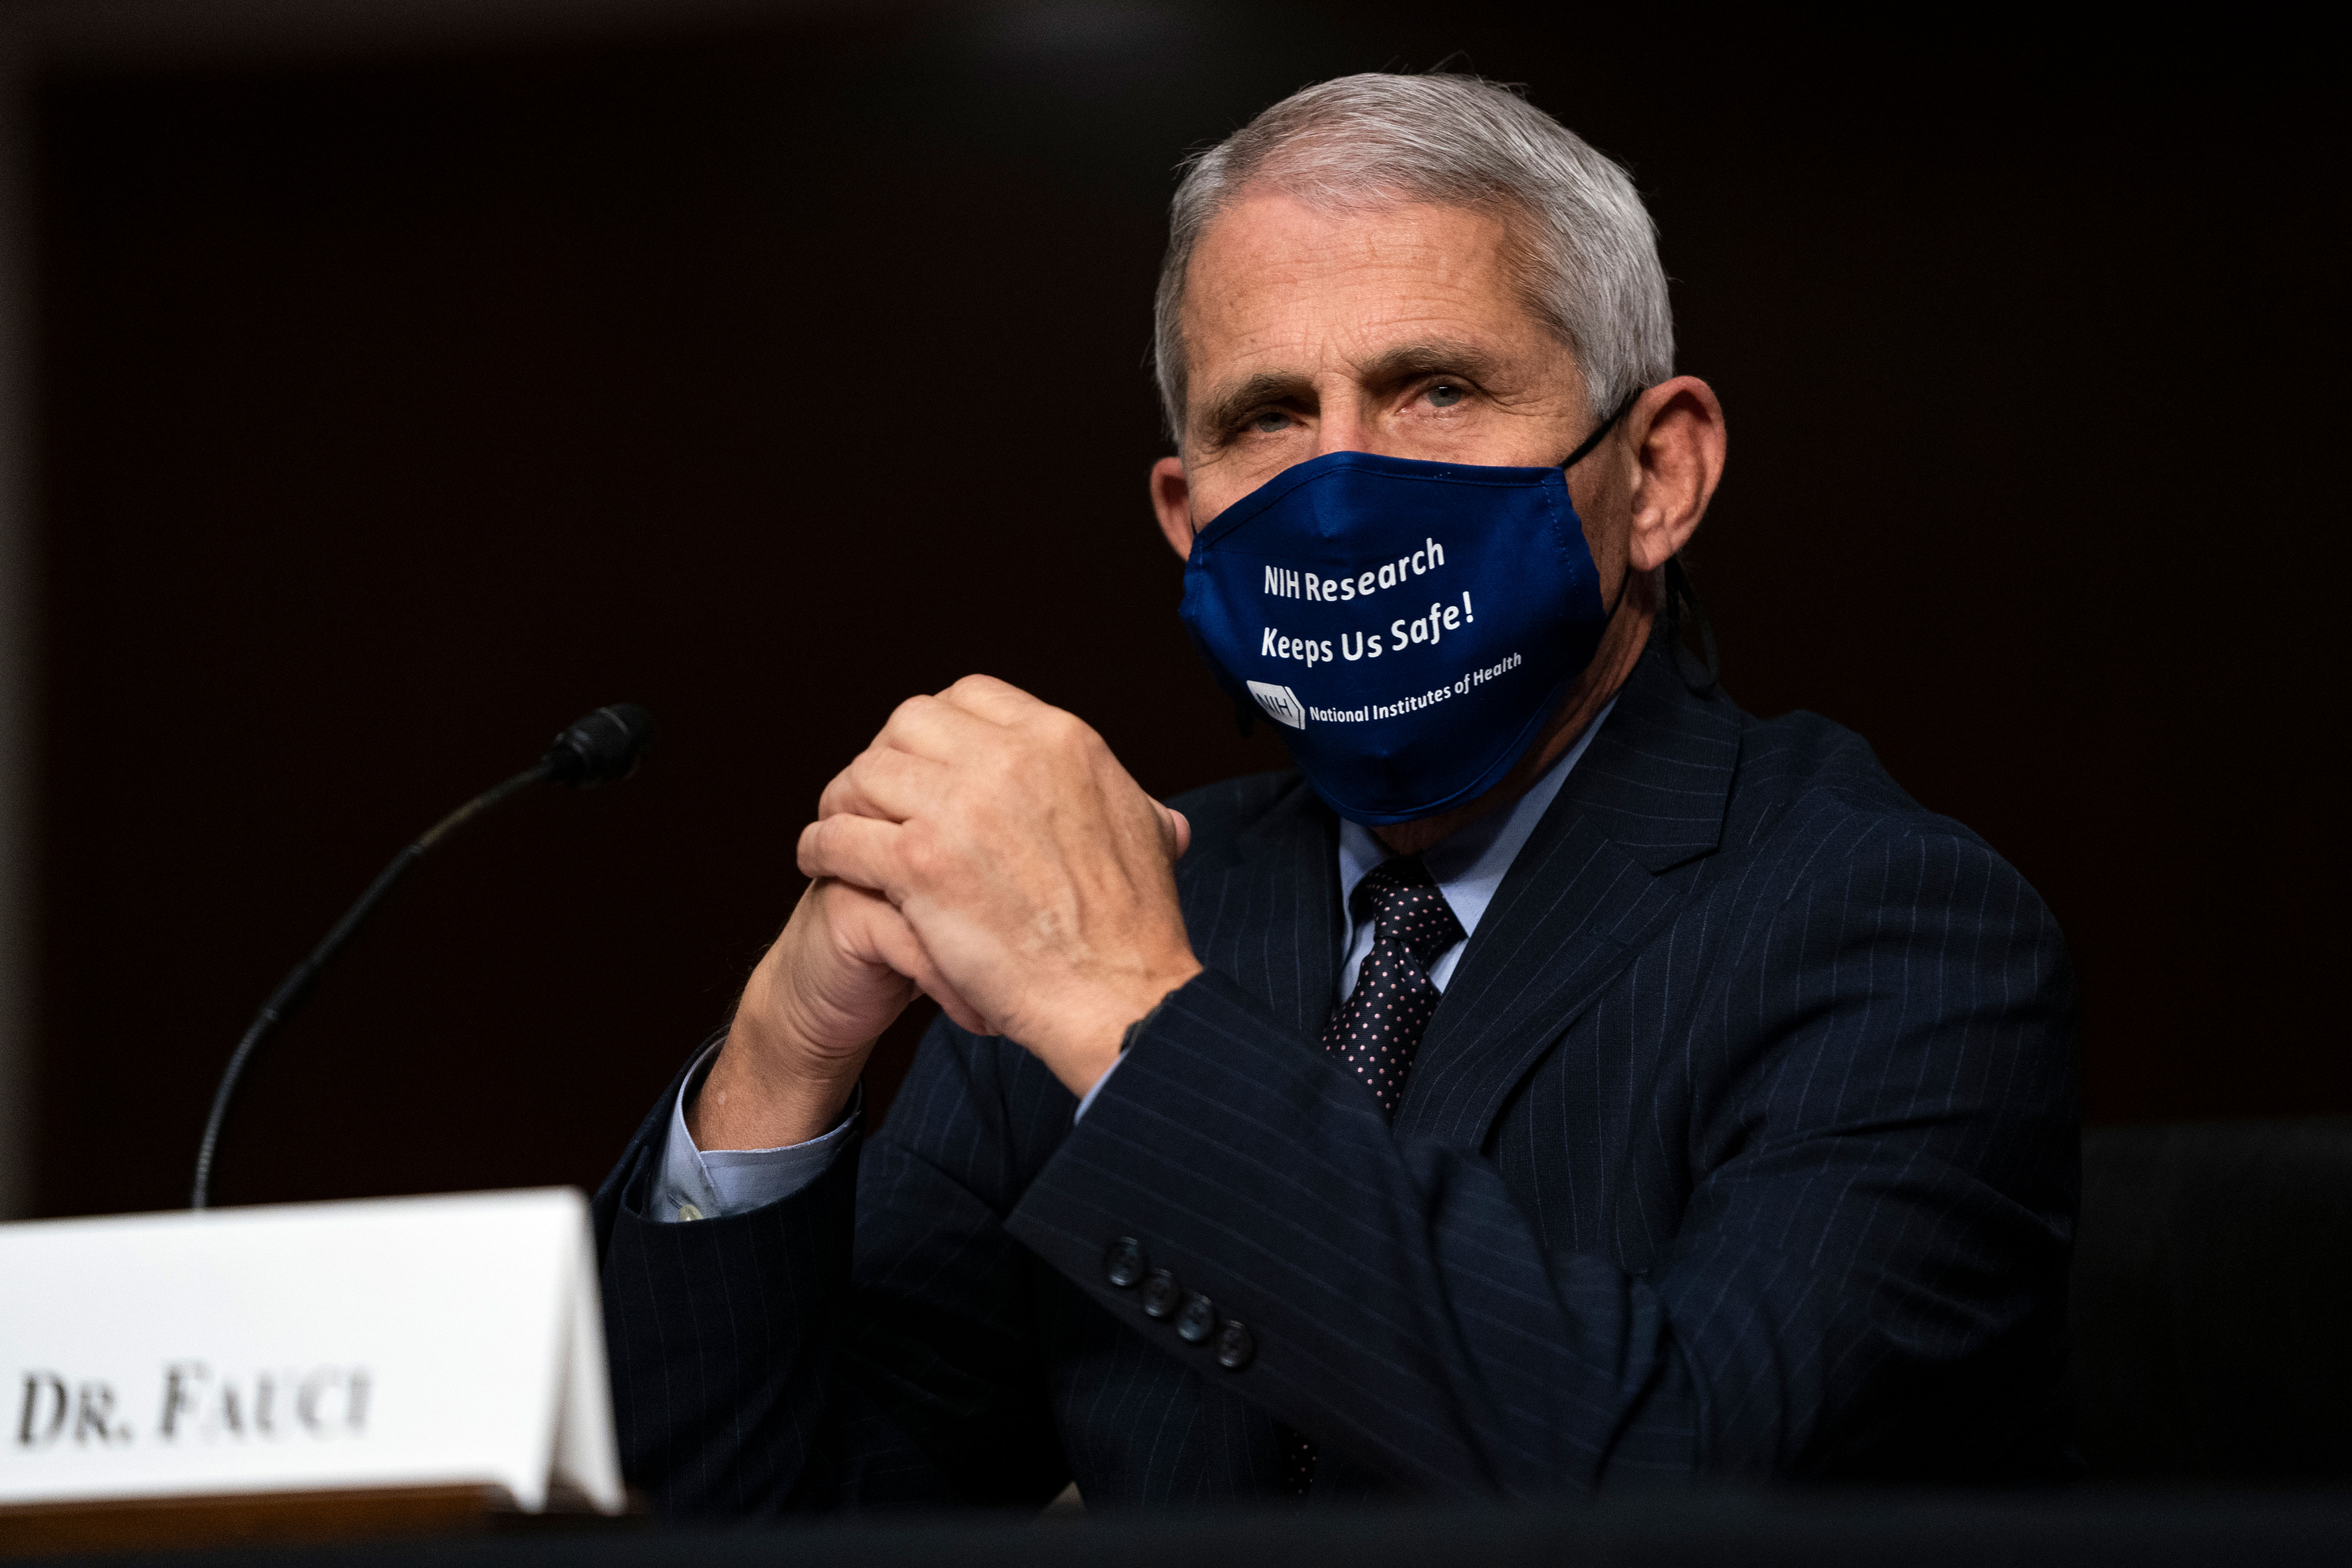 Dr. Anthony Fauci testifies at a hearing  in Washington, DC. on September 23.